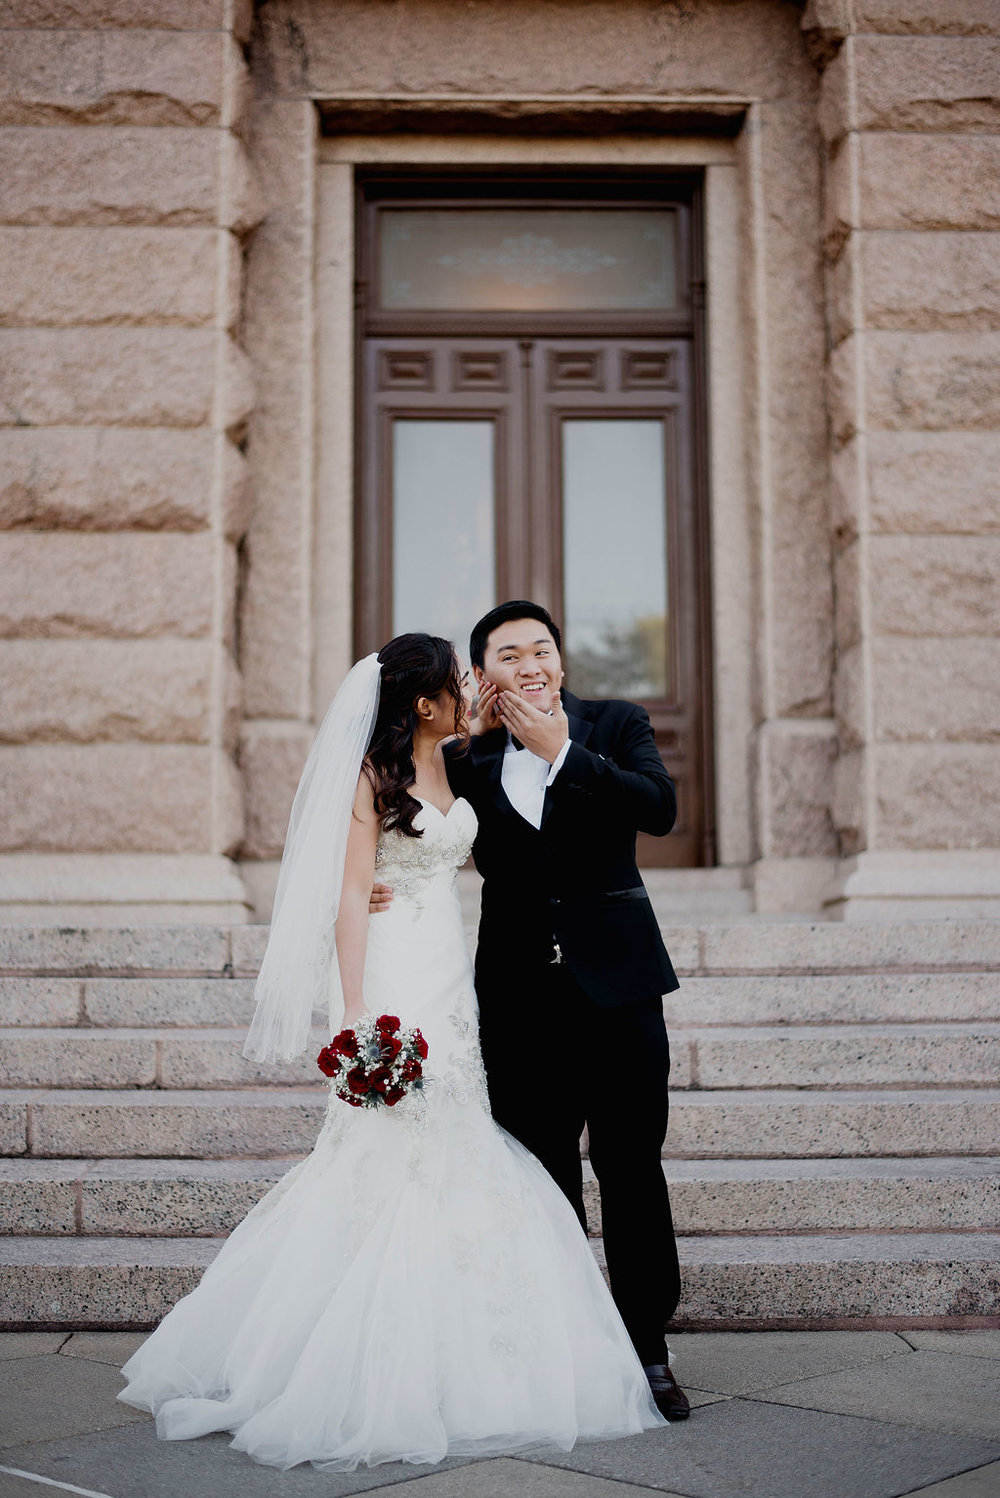 Austin Pre Wedding Portraits Photographer Texas State Capitol Zilker Botanical Gardens EffJay Photography014.jpg